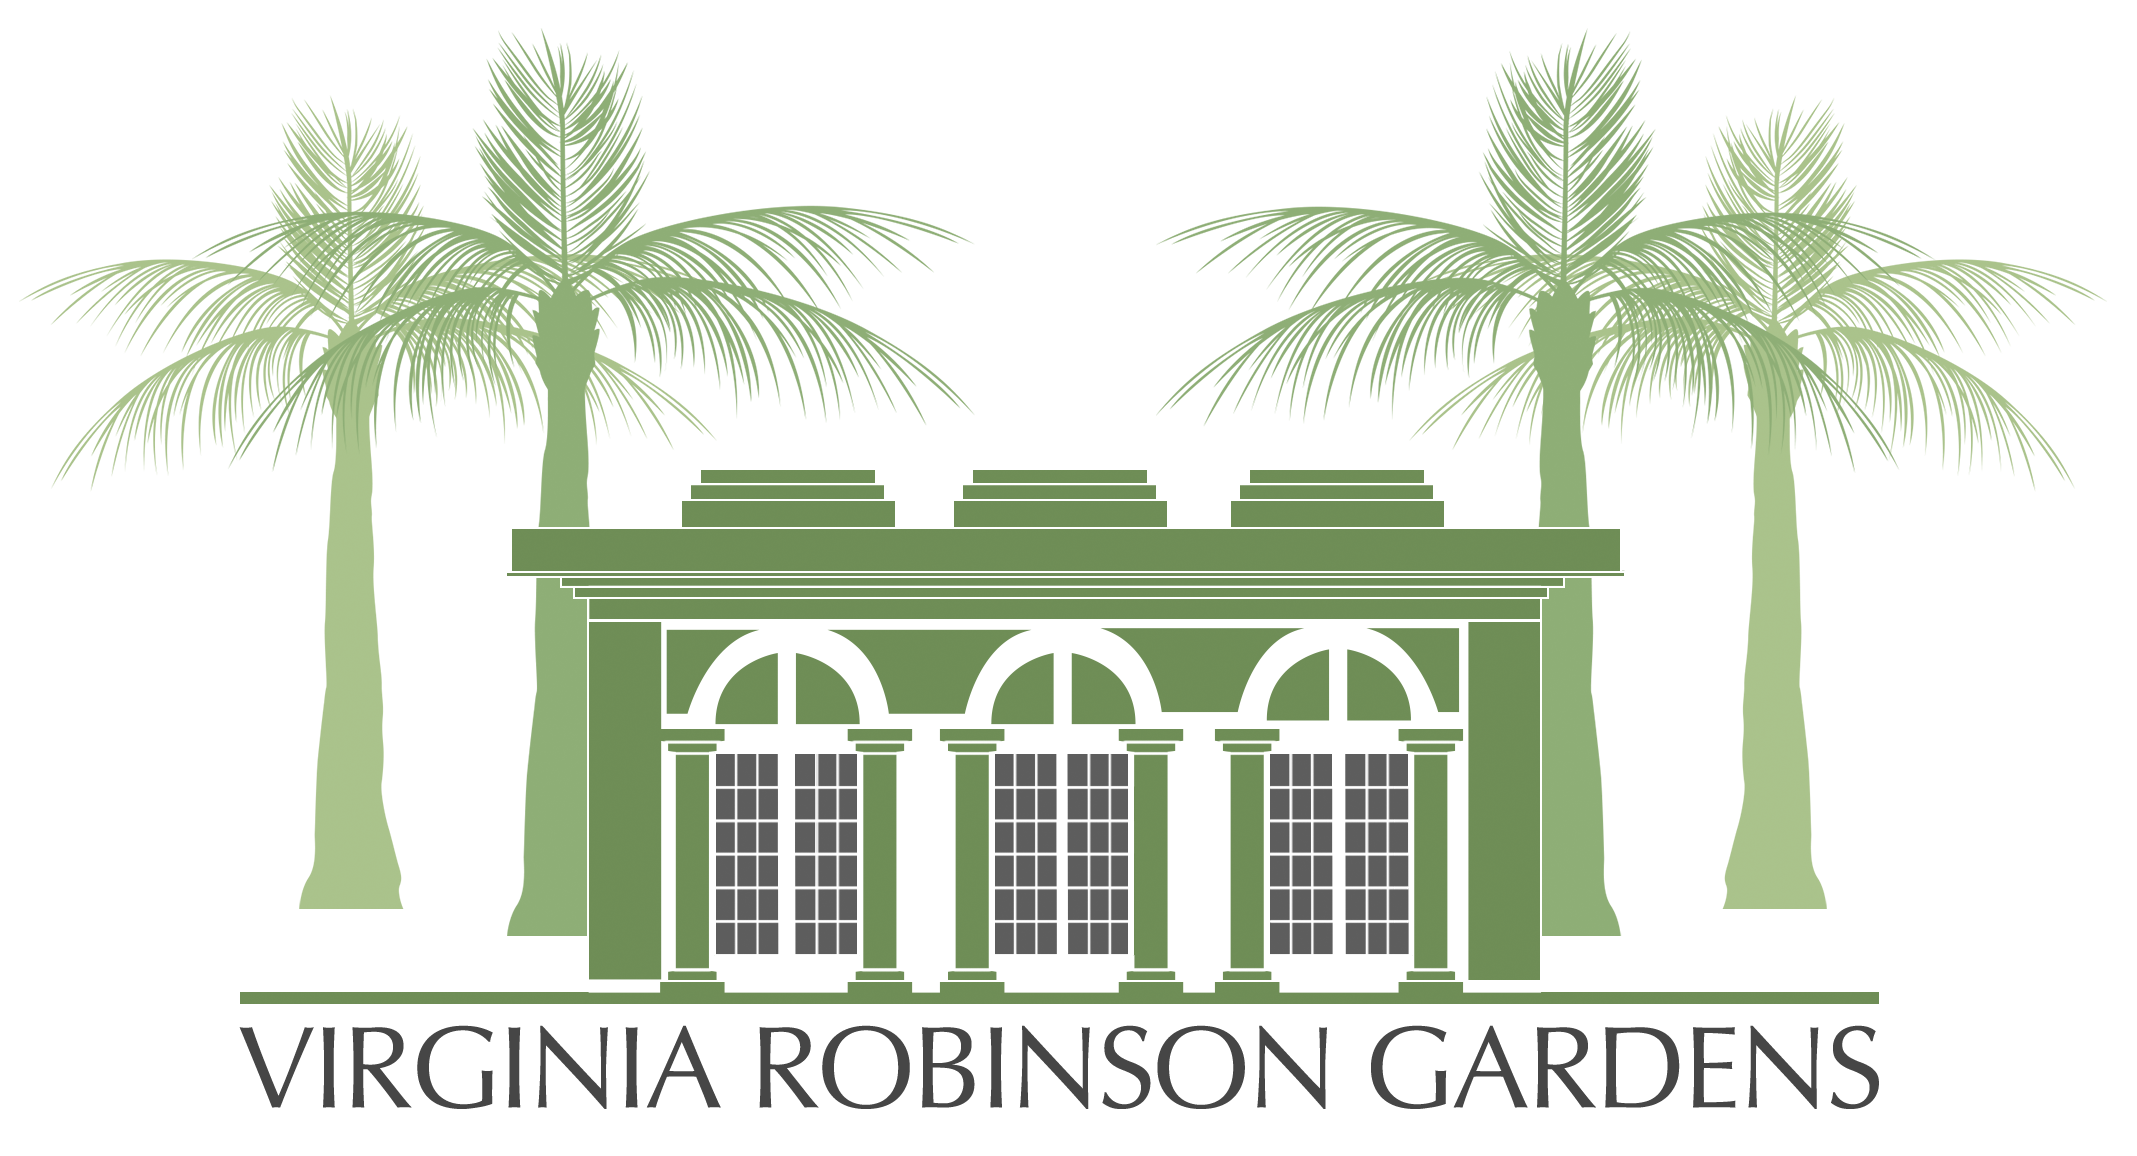 Gate clipart garden tour. Frequently asked questions robinson